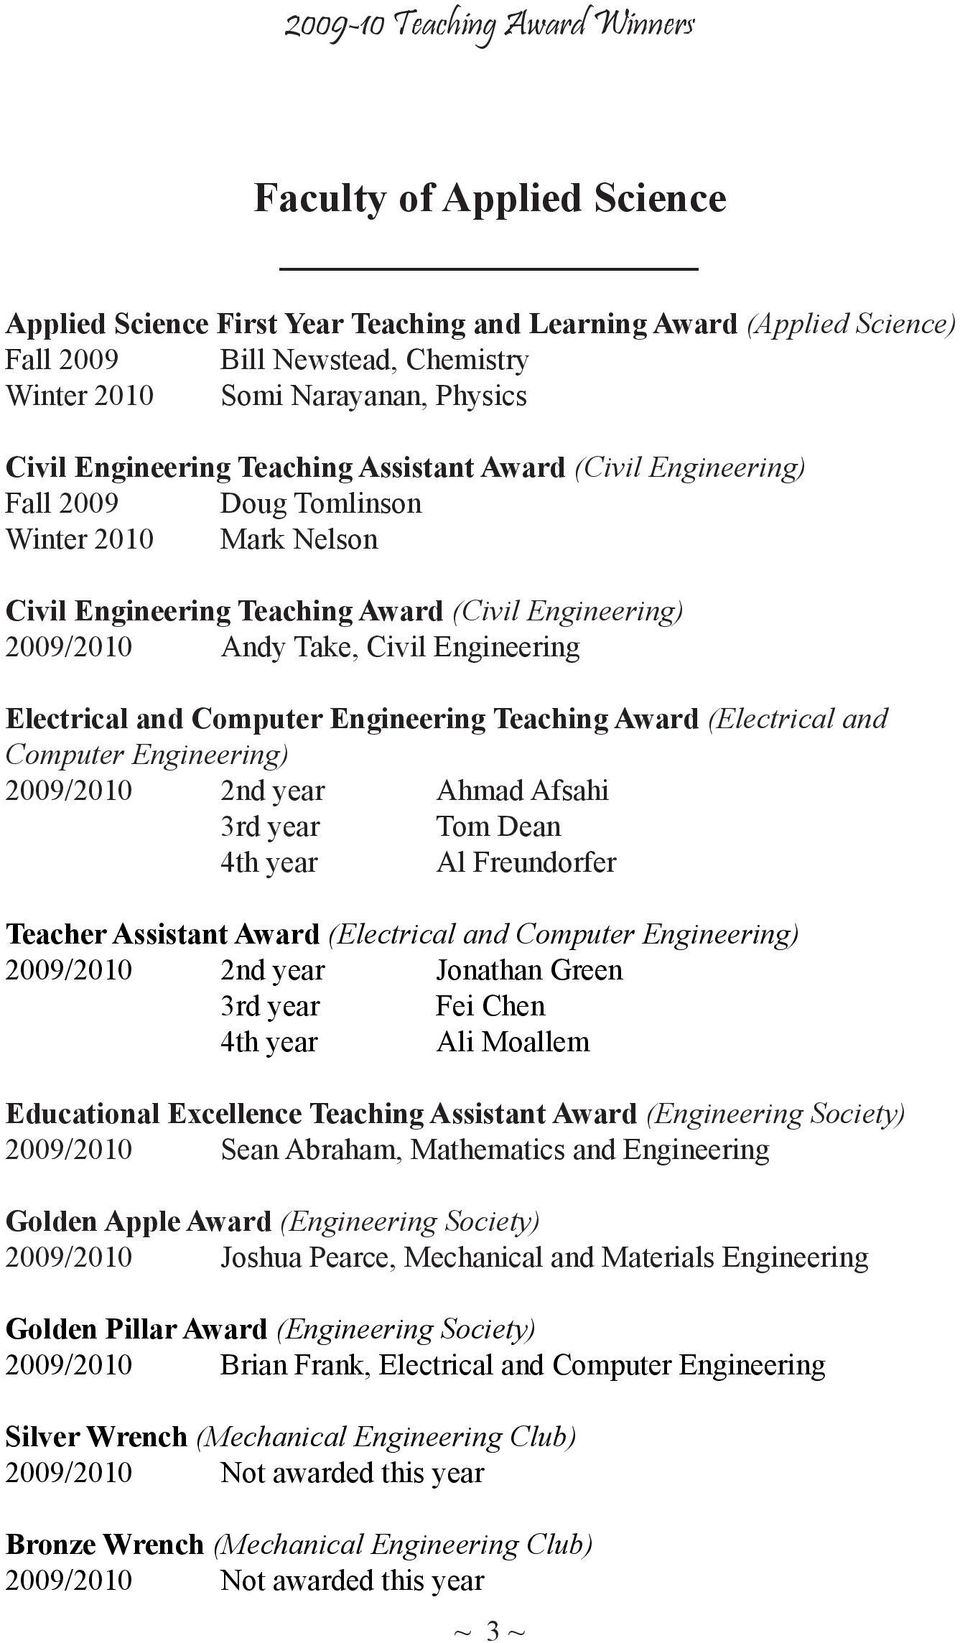 Computer Engineering Teaching Award (Electrical and Computer Engineering) 2009/2010 2nd year Ahmad Afsahi 3rd year Tom Dean 4th year Al Freundorfer Teacher Assistant Award (Electrical and Computer